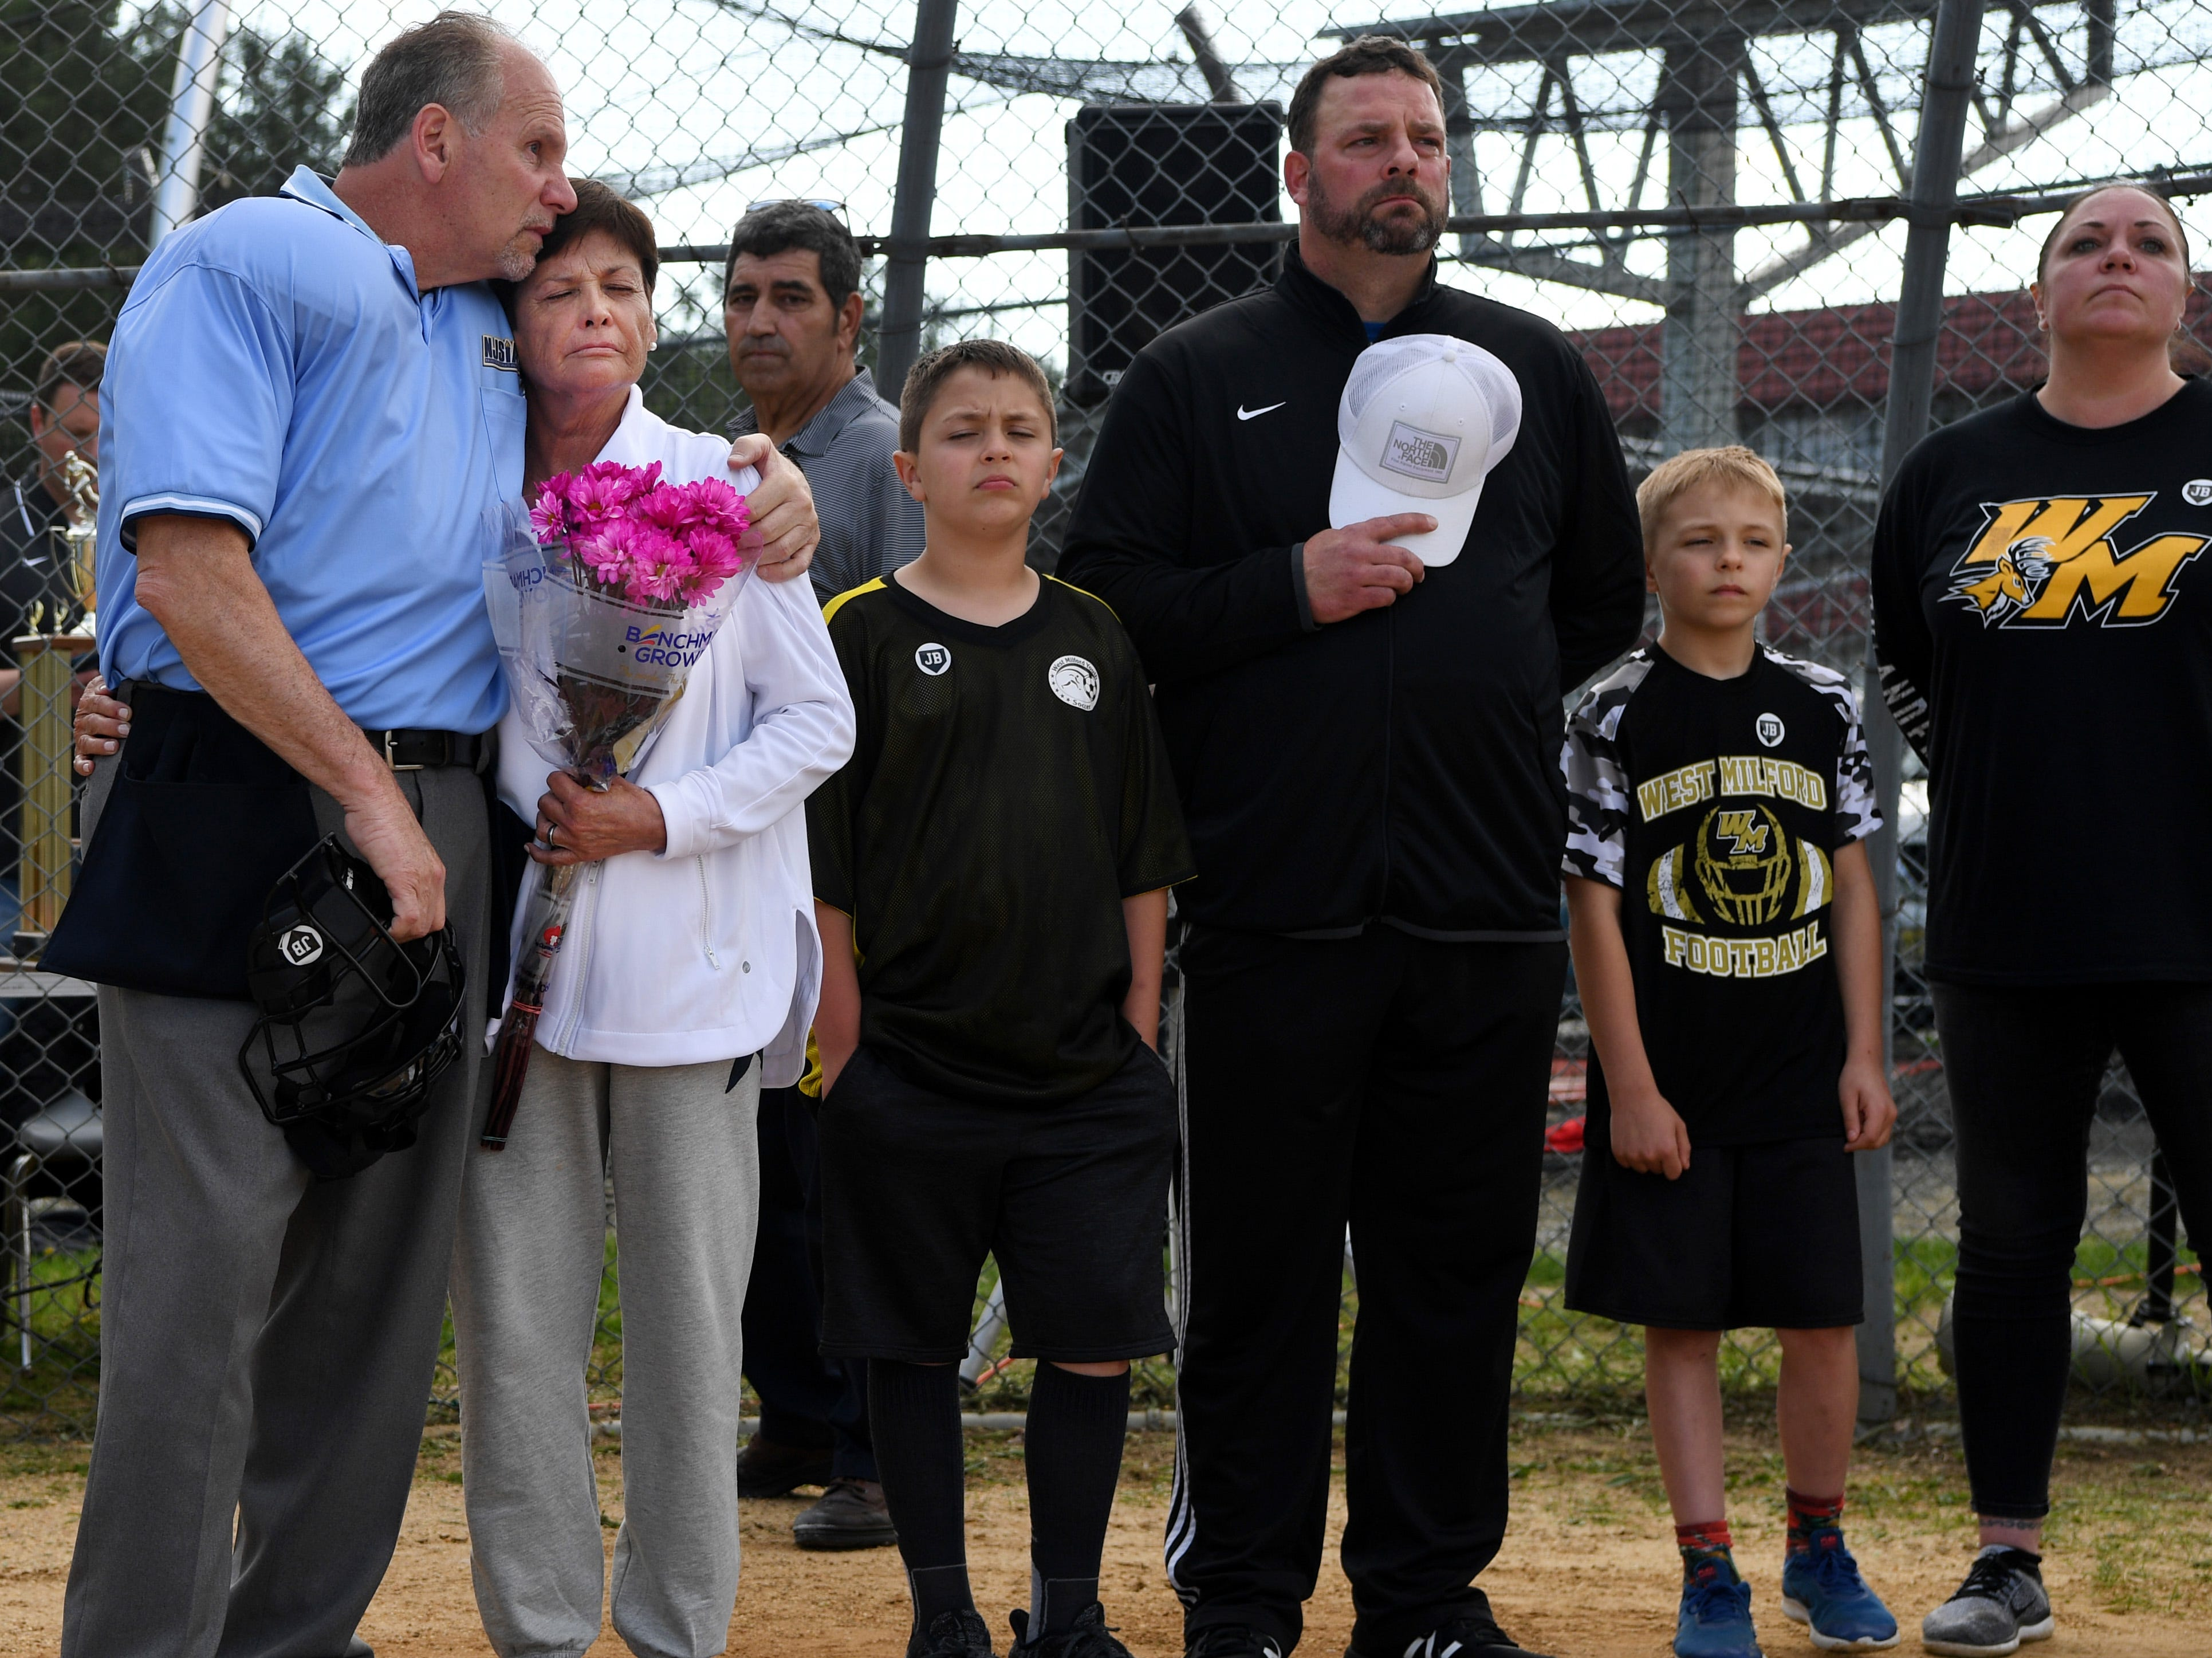 Passaic County Technical Institute vs. West Milford in the Passaic County Tournament softball final at Wayne Hills High School on Wednesday, May 15, 2019. (second from left) Suzanne Busch during a ceremony at home plate for her husband, umpire Jim Busch, who died in his sleep last Friday.